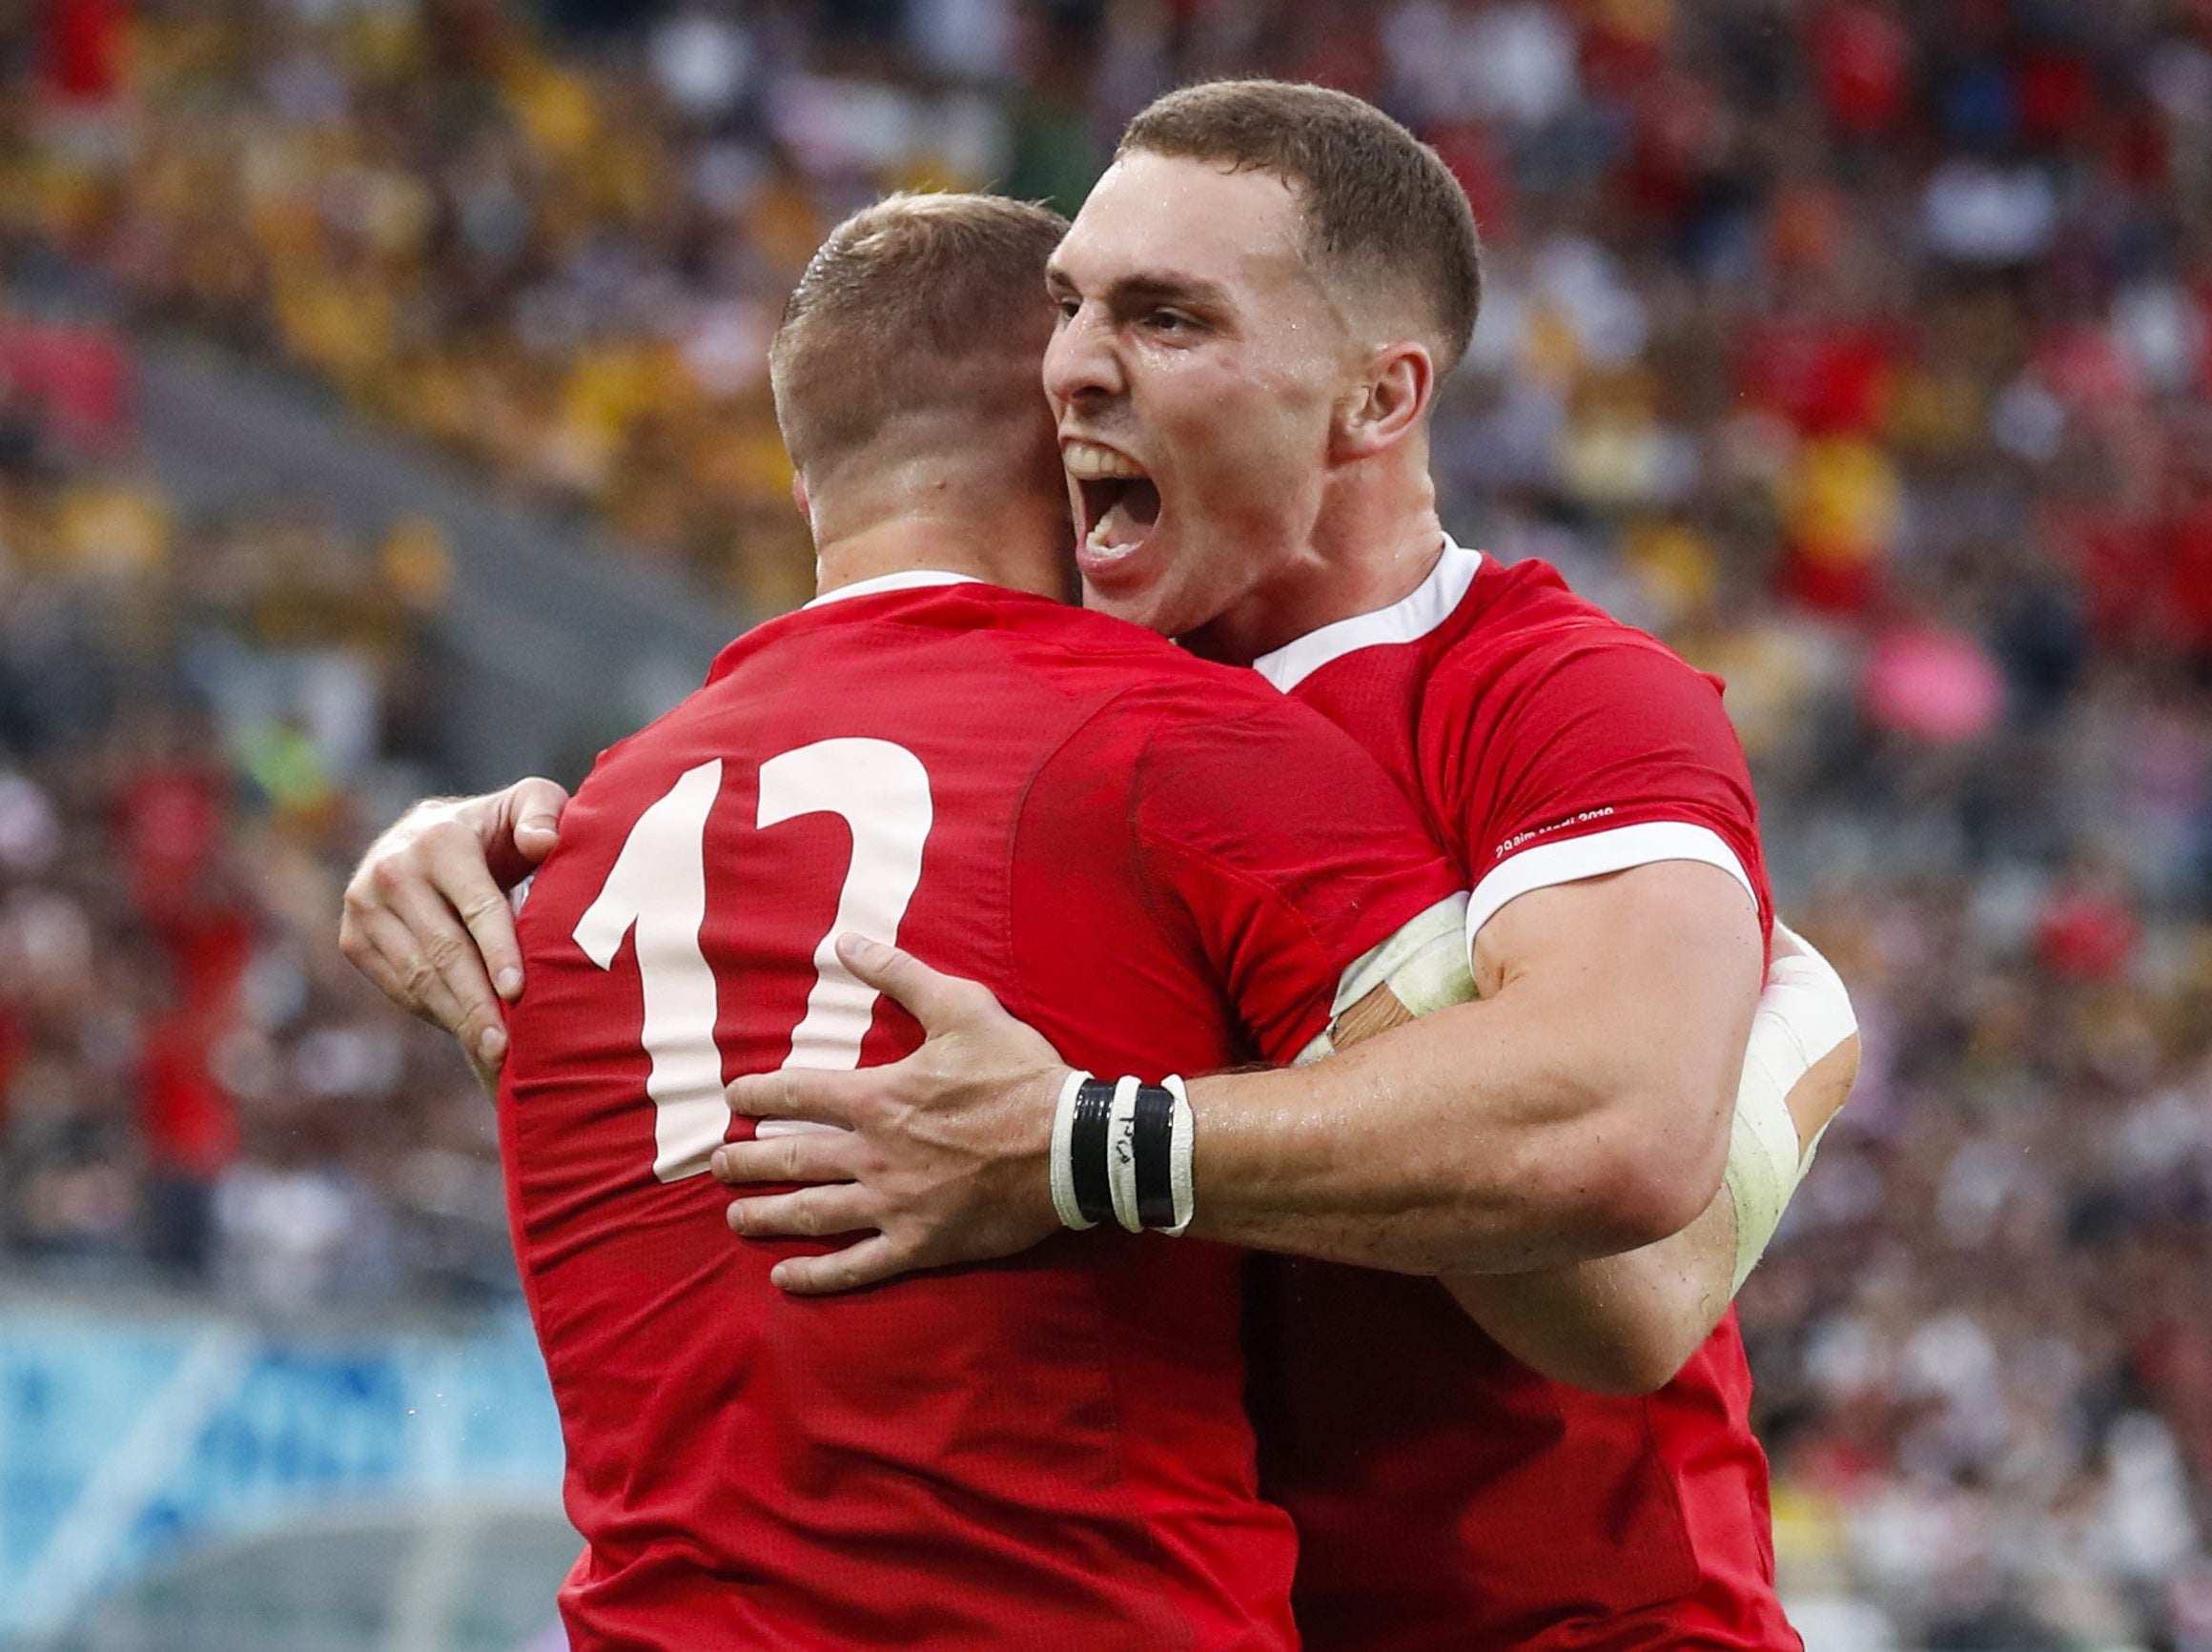 Rugby World Cup 2019, Wales vs France: Kick-off time, where to watch, team news and odds for quarter-final clash